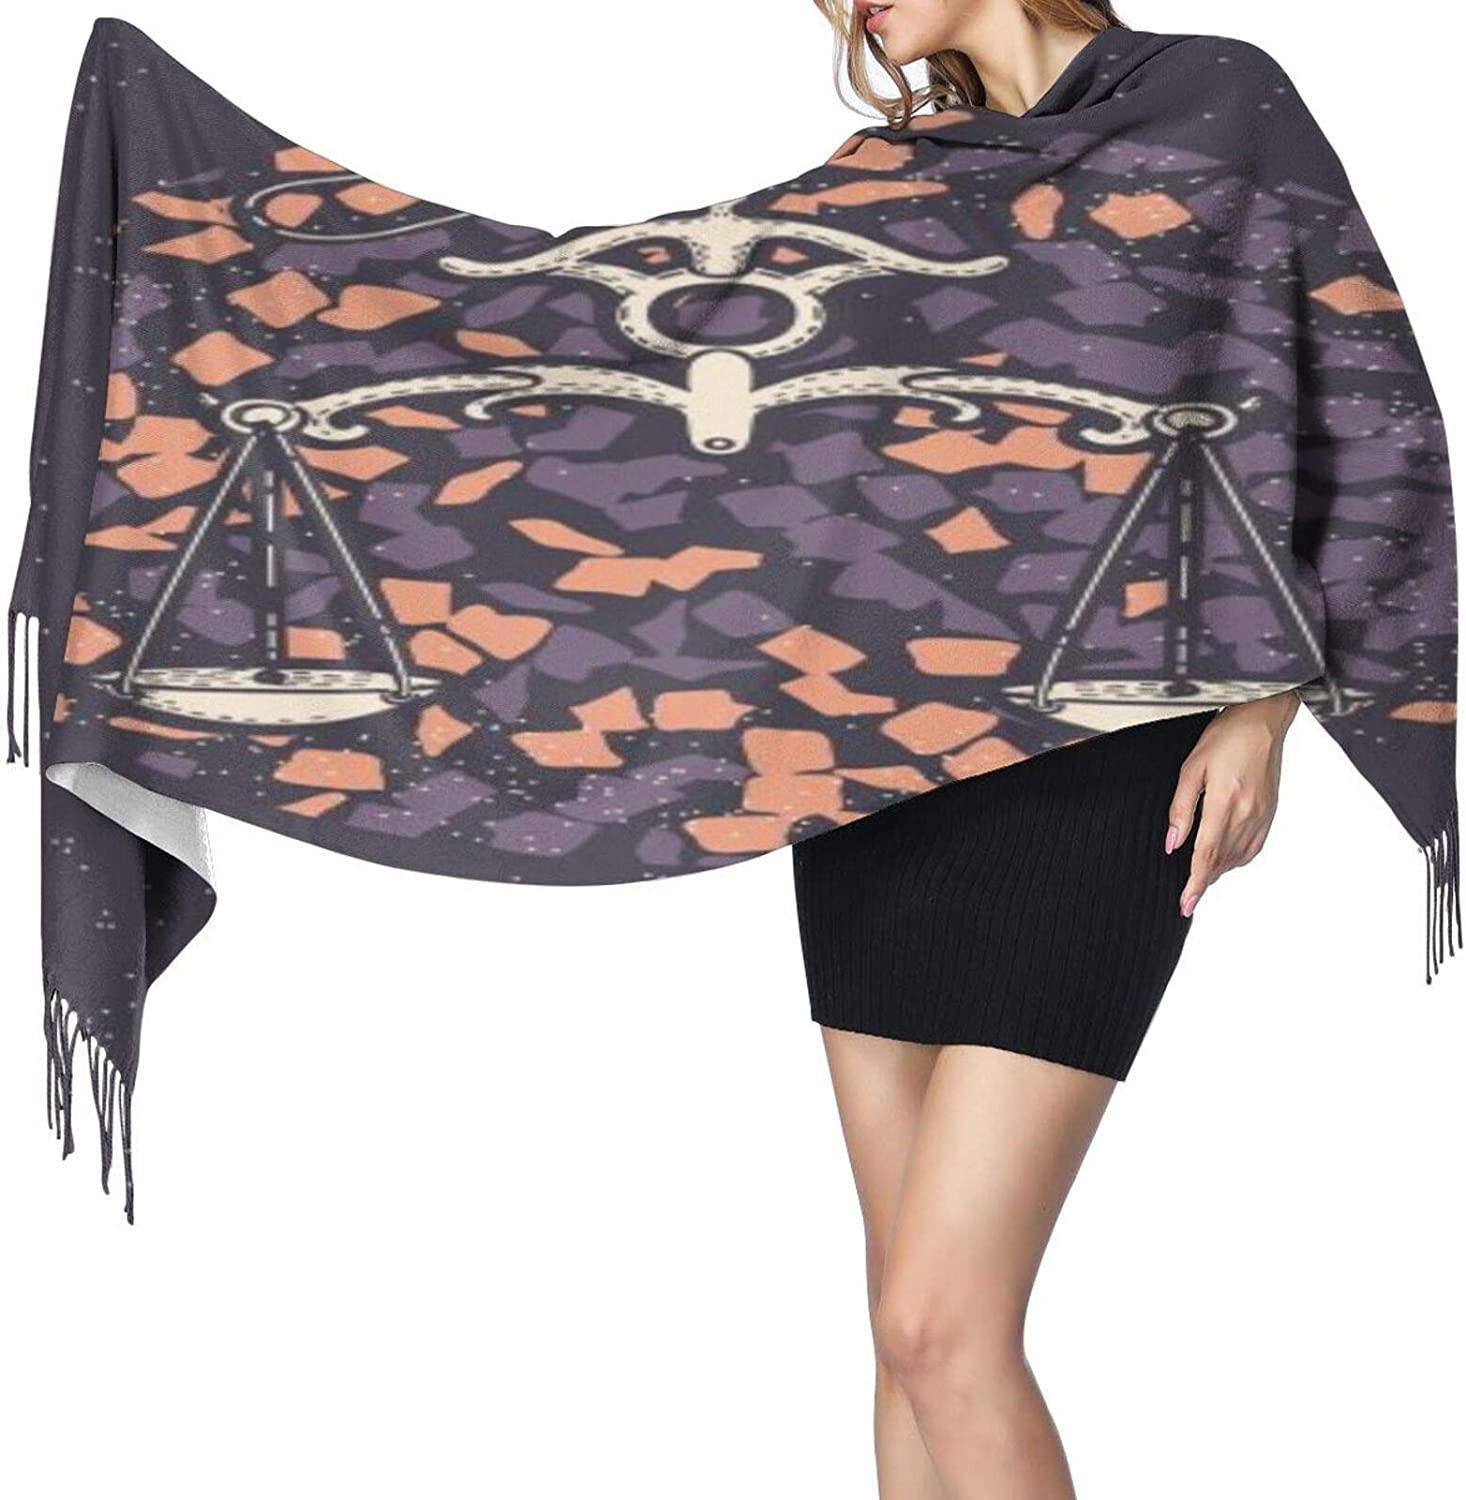 Cashmere fringed scarf Astrological Skull winter extra large scarf